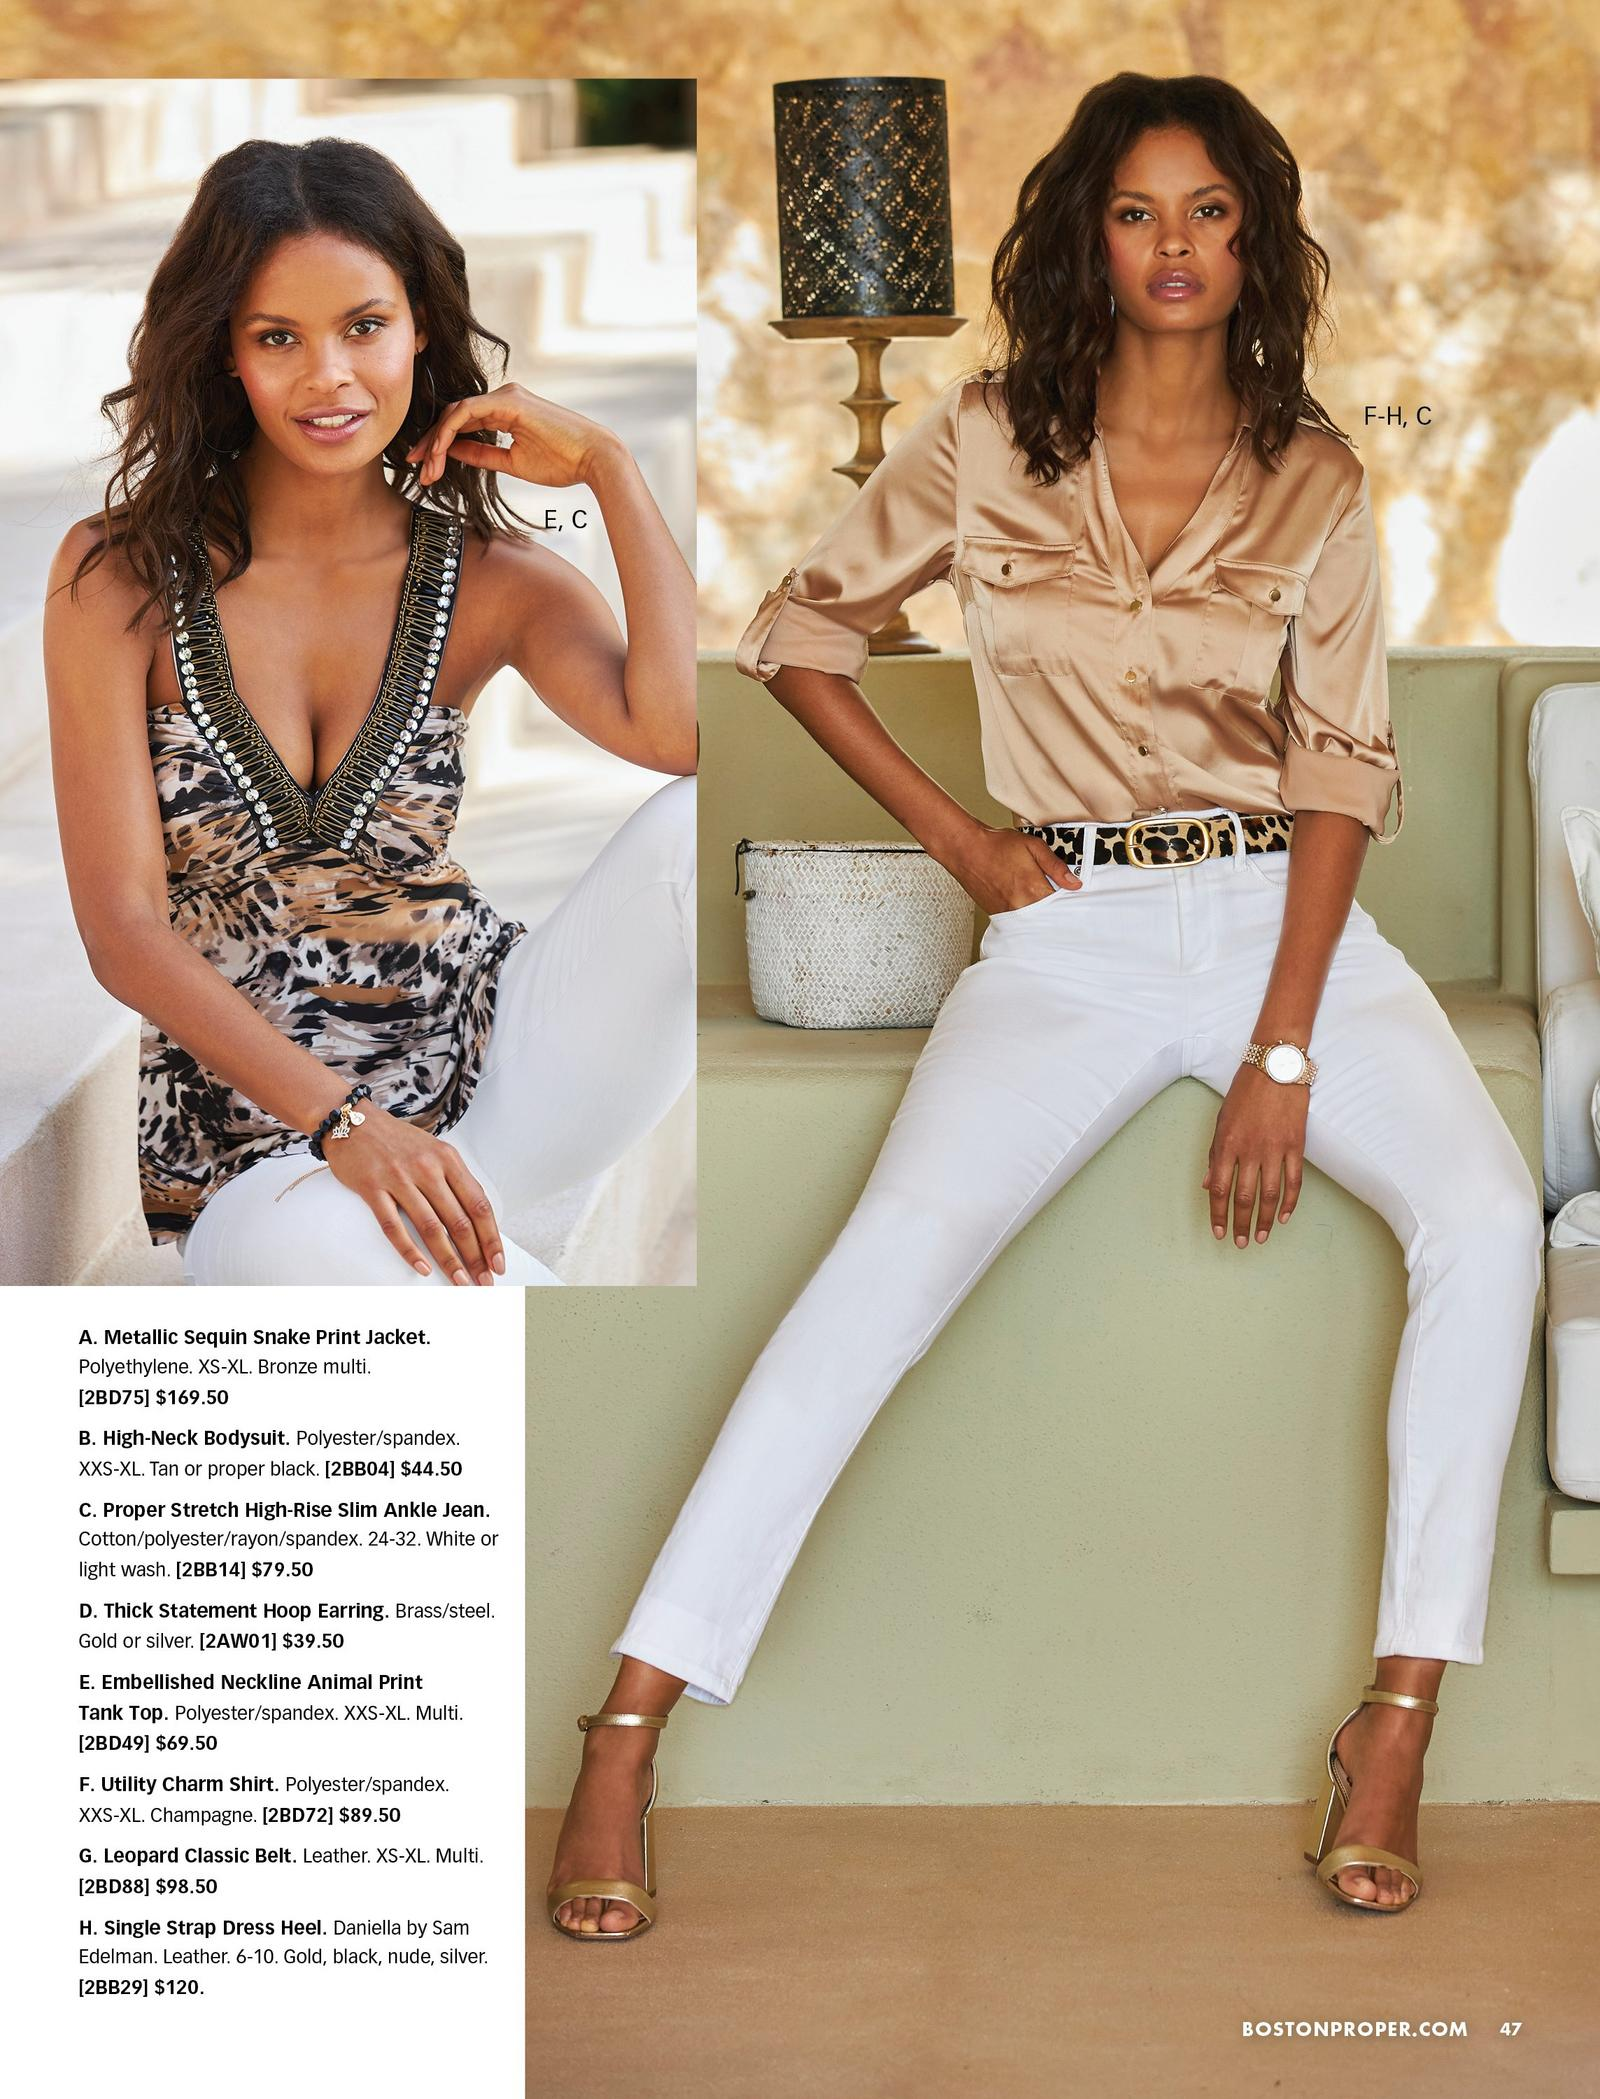 left model wearing an animal print sleeveless embellished neckline top and white jeans. right model wearing a tan button-down top, leopard belt, white jeans, and gold single strap heels.